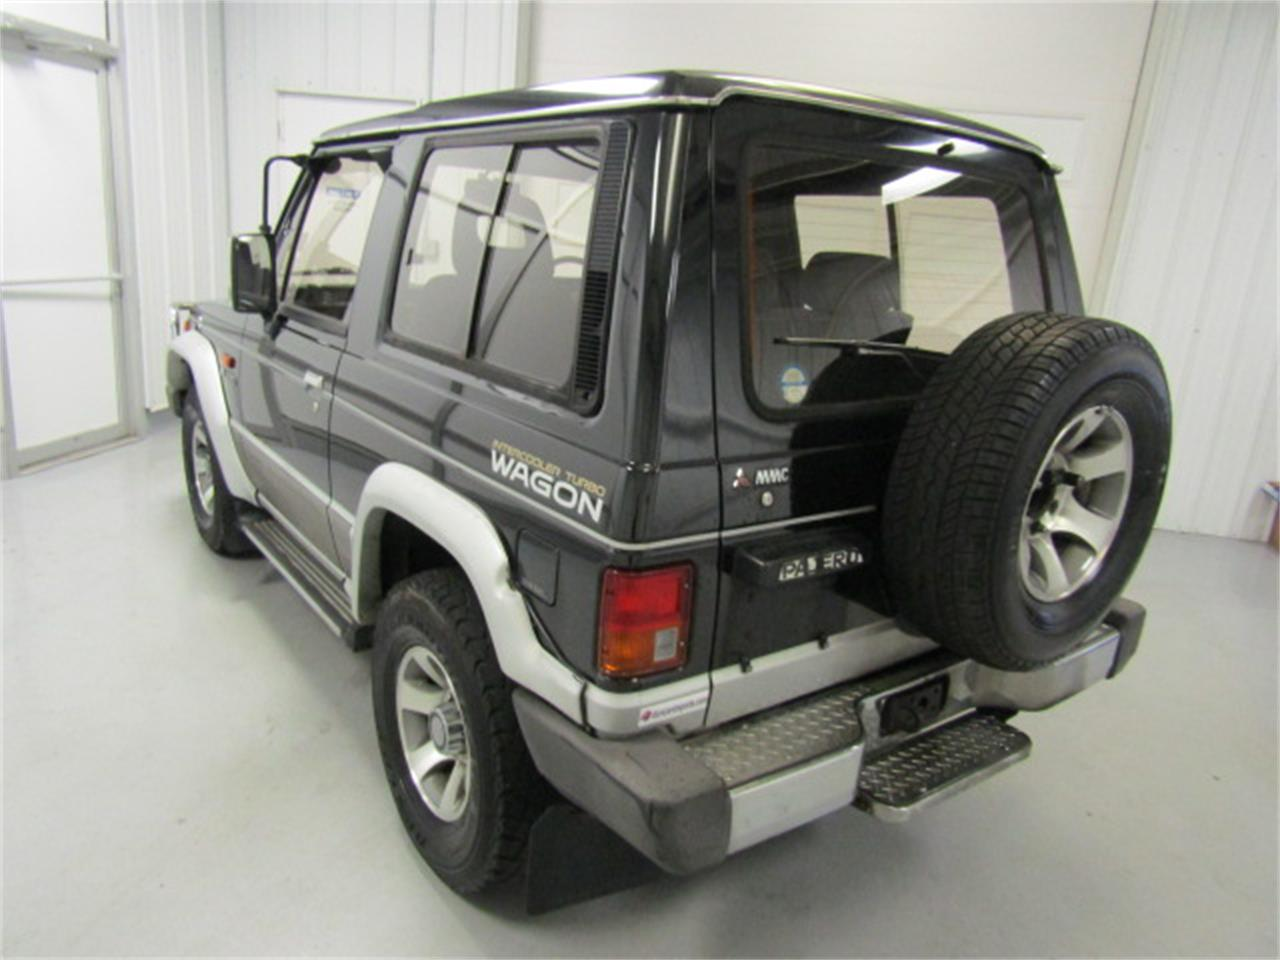 Large Picture of 1990 Mitsubishi Pajero located in Virginia - $7,999.00 Offered by Duncan Imports & Classic Cars - KXIX